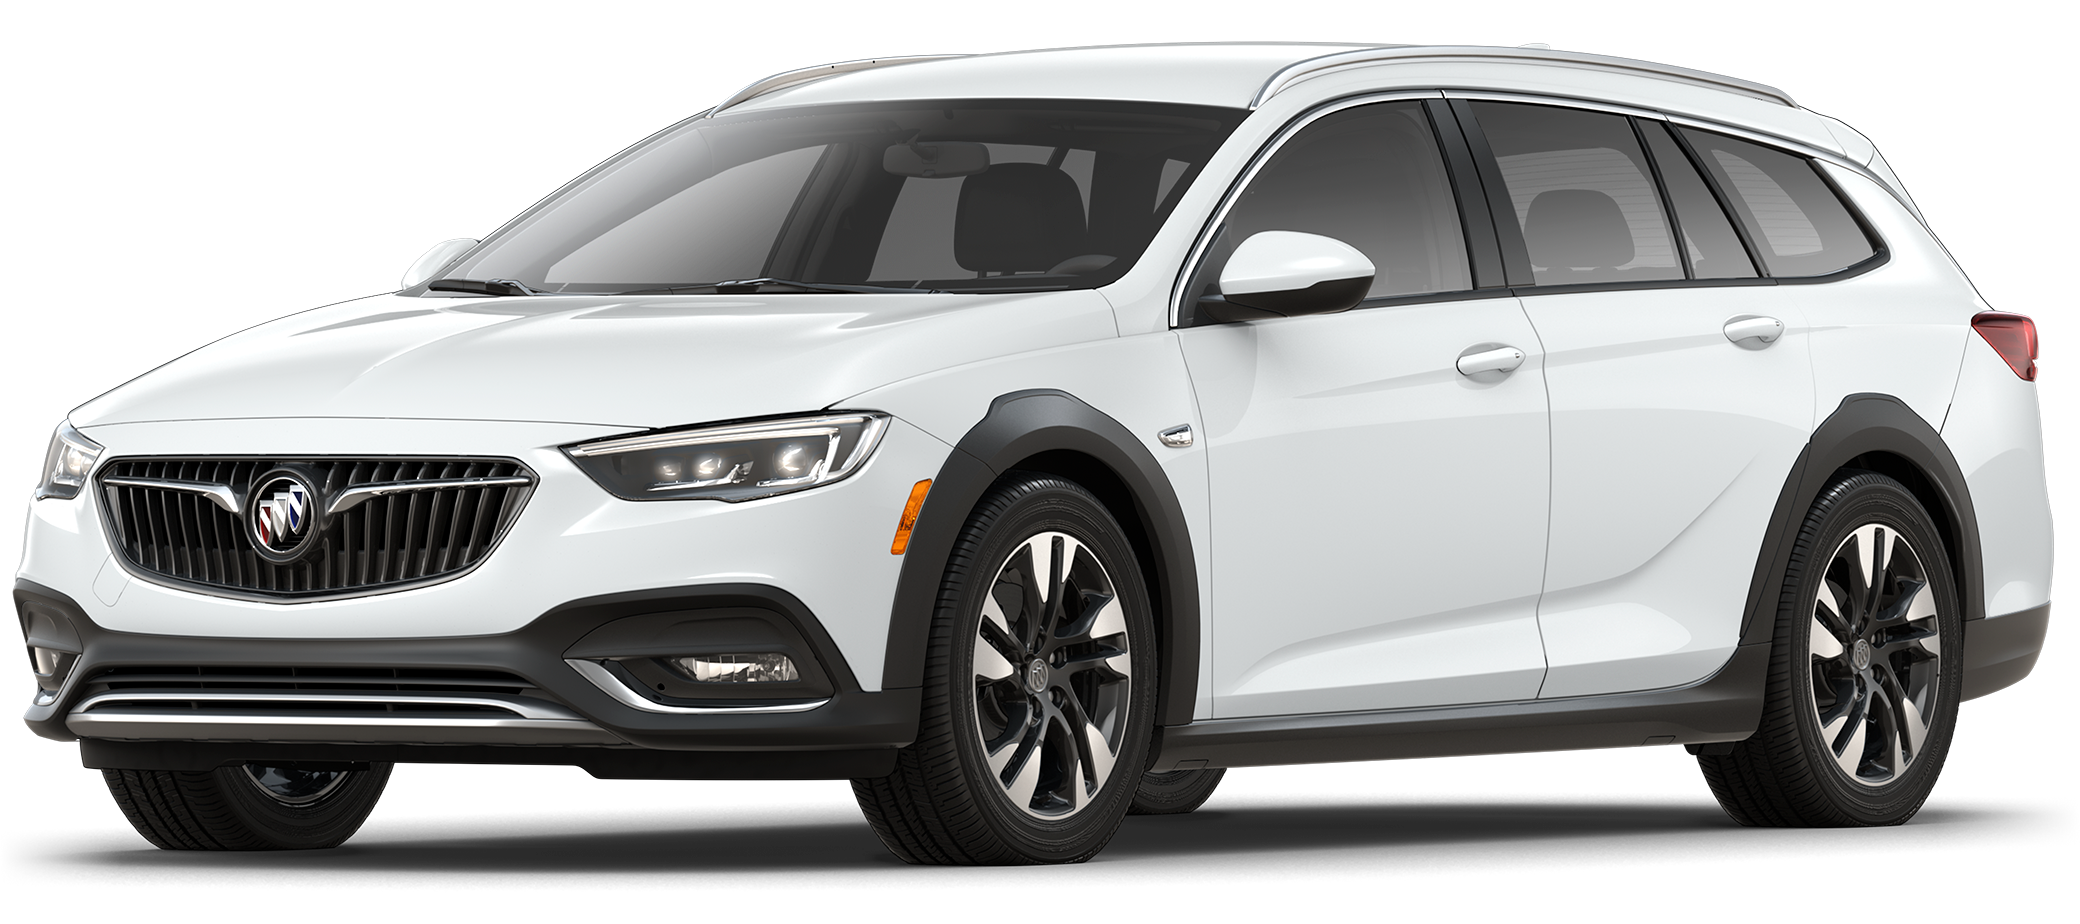 2019 Buick Regal Tourx Incentives Specials Offers In Indiana Pa